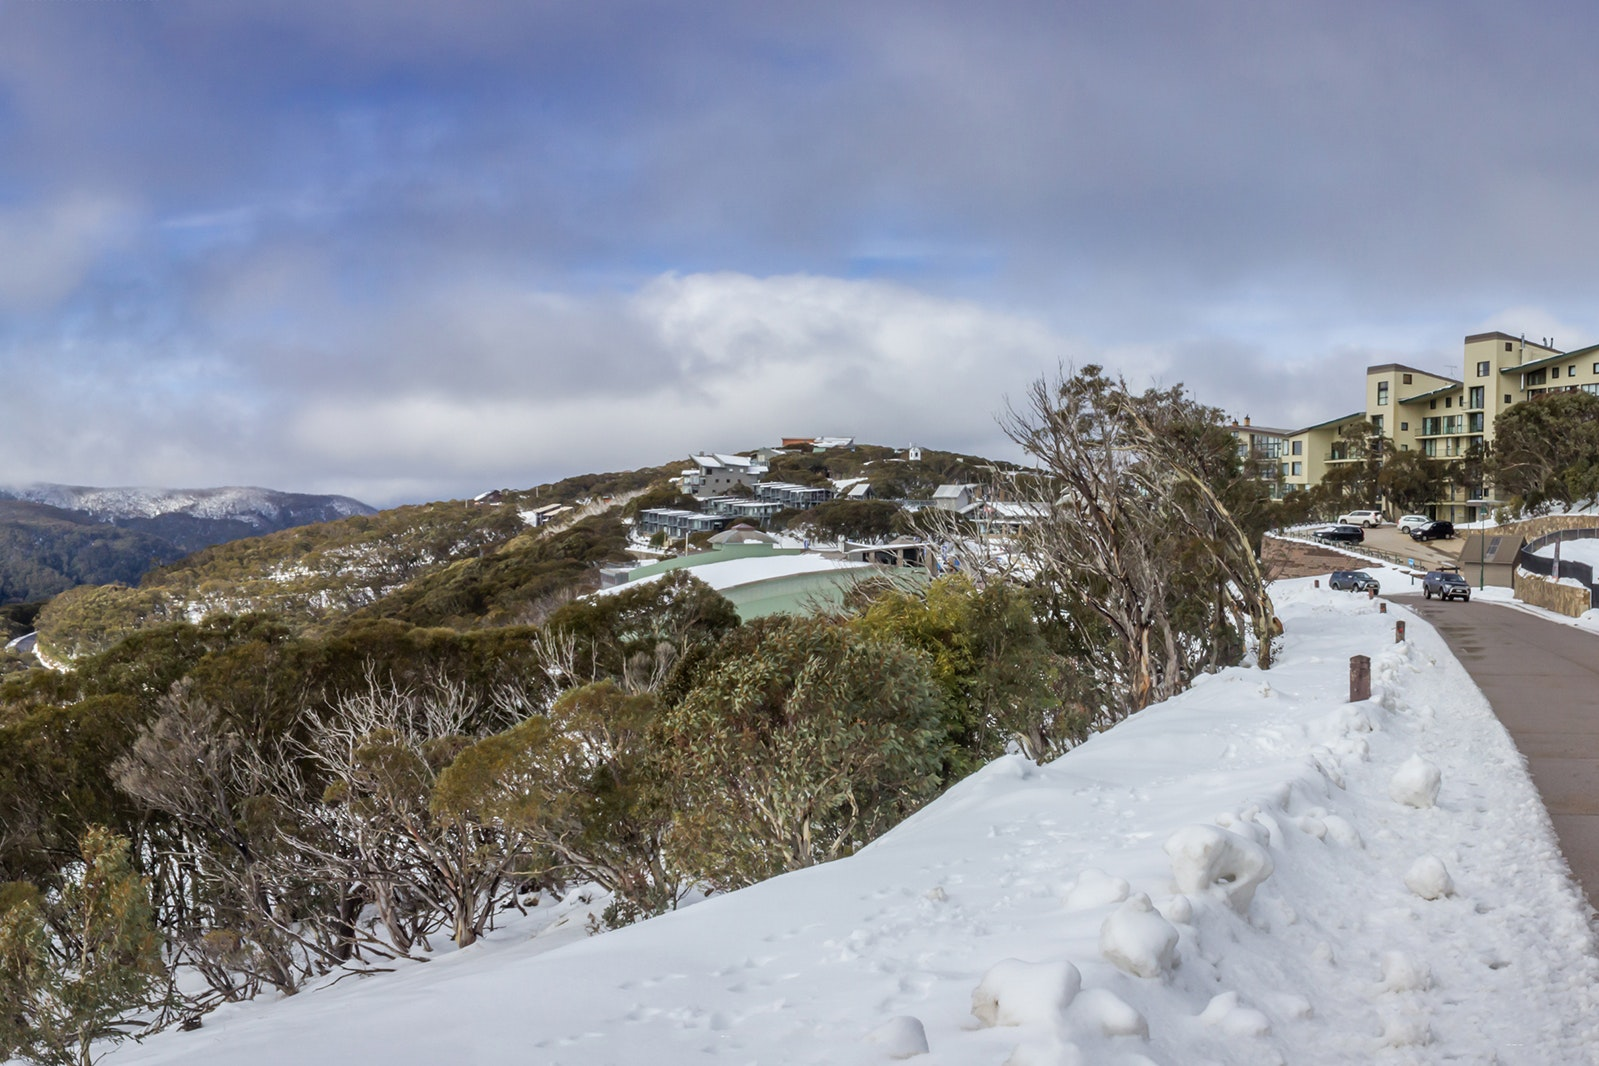 Mount Buller feels like it was plucked straight out of the European Alps.